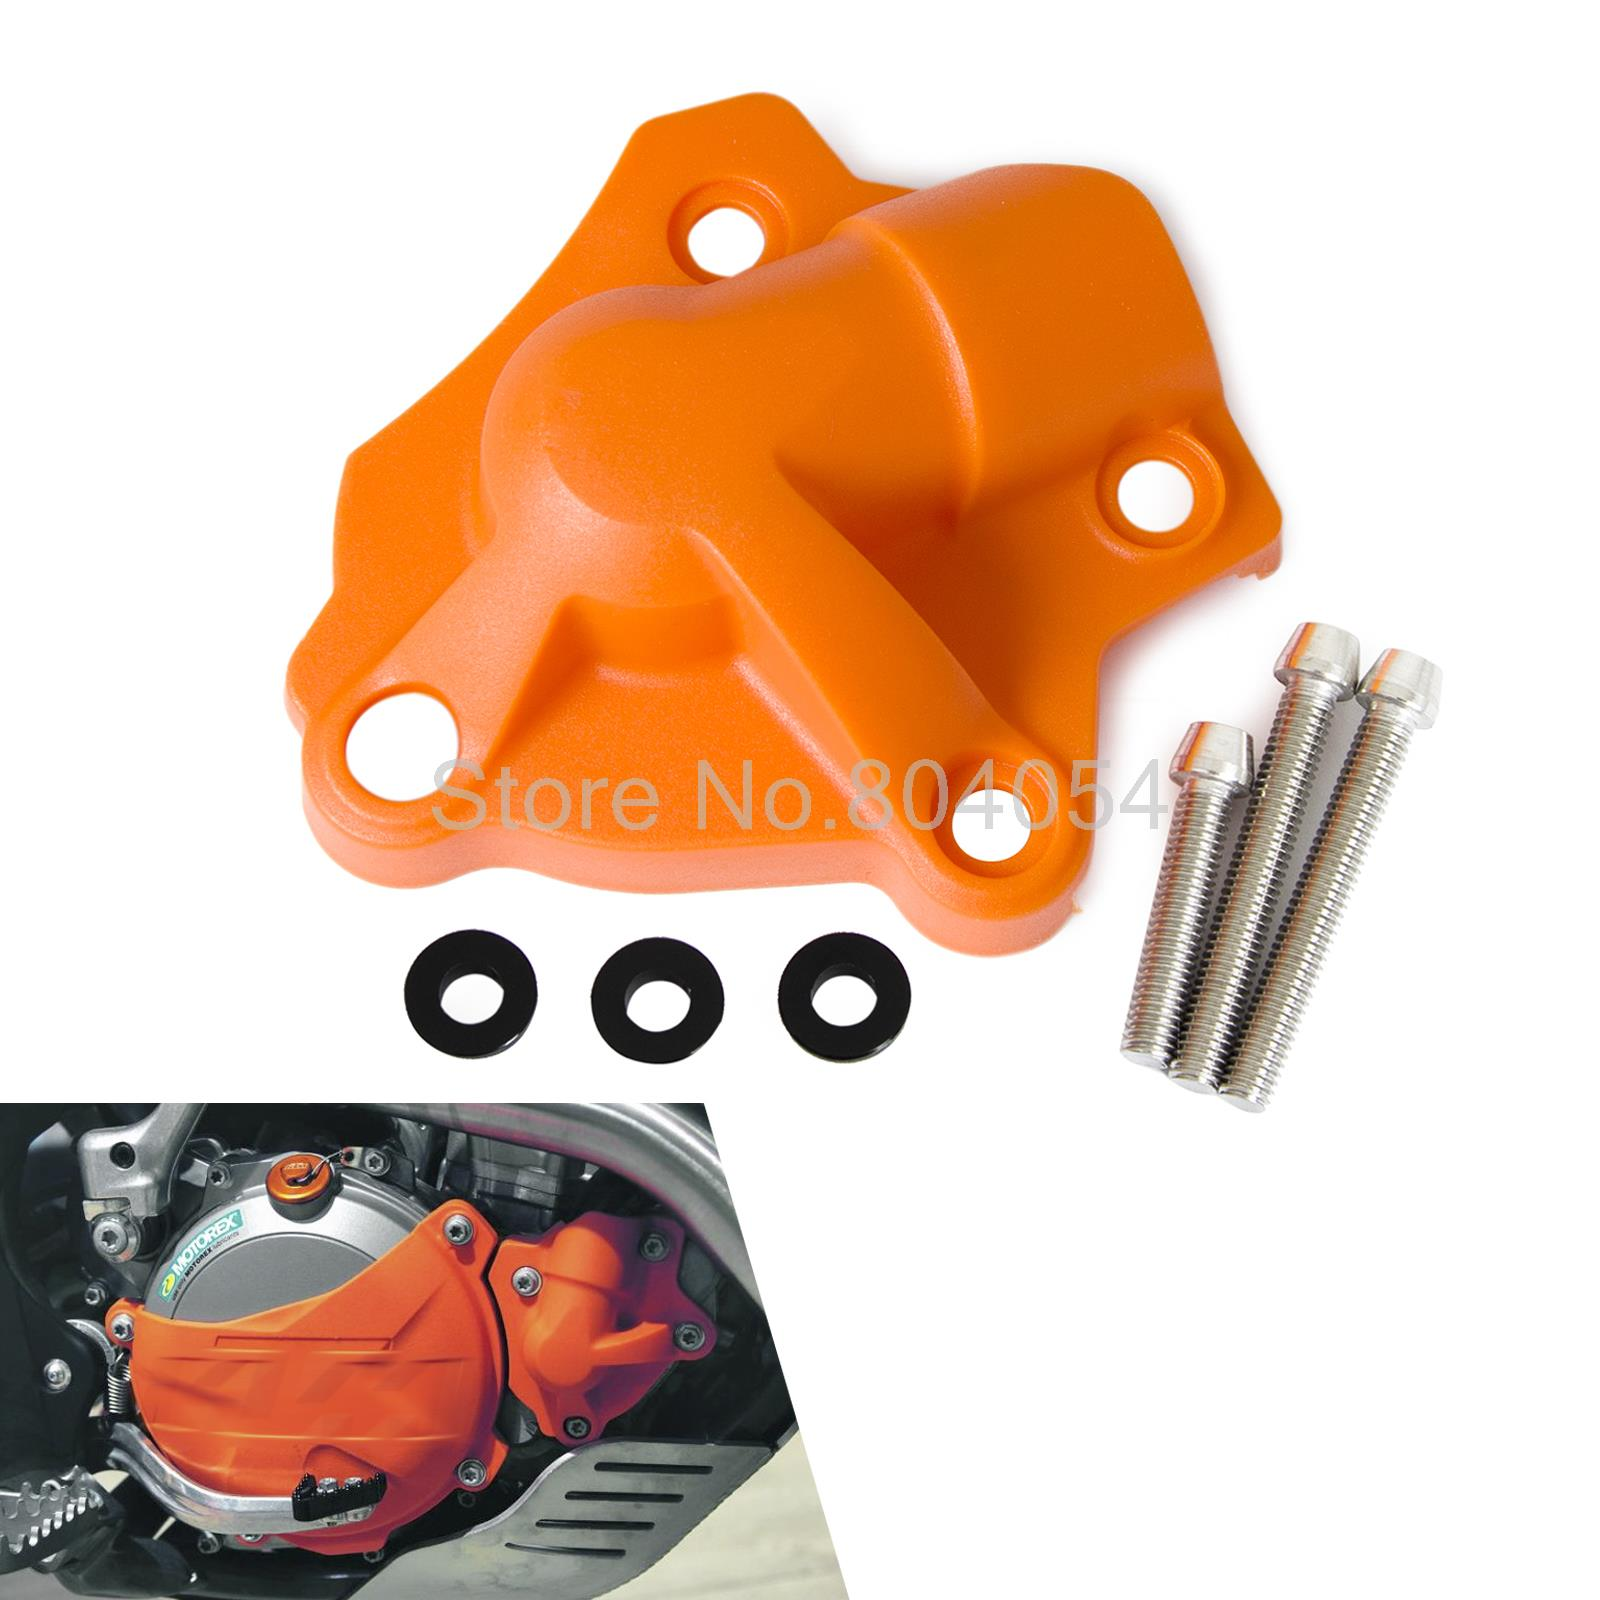 Water Pump Cover Protector Fits for KTM  350 XCF-W FREERIDE 350 2013 2014 2015 2016